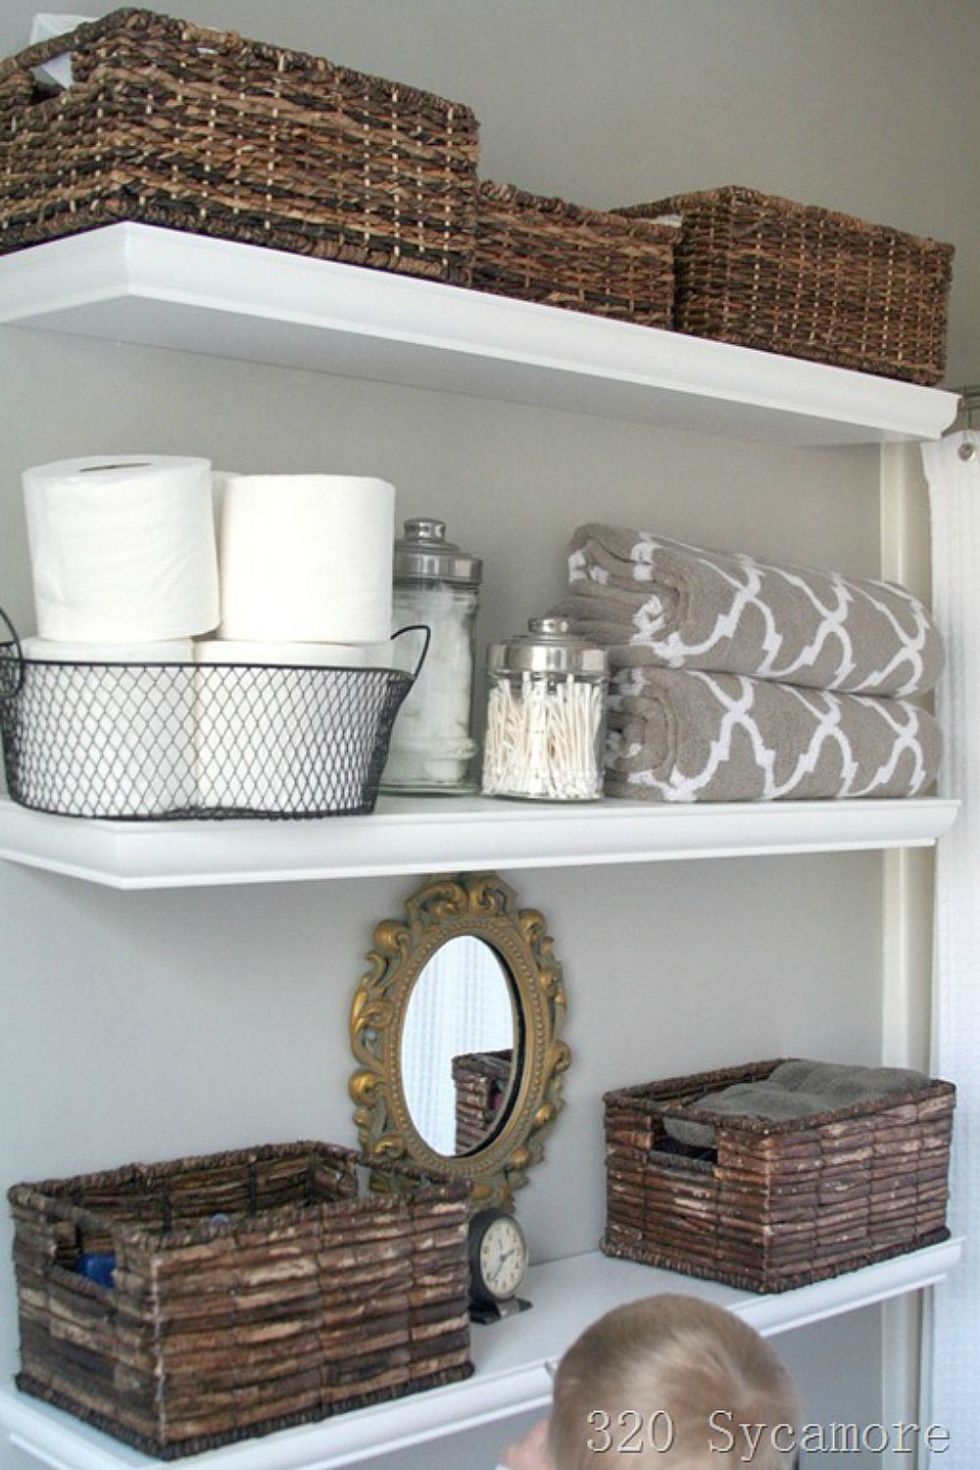 Bathroom wall storage baskets - Bathroom Storage Ideas